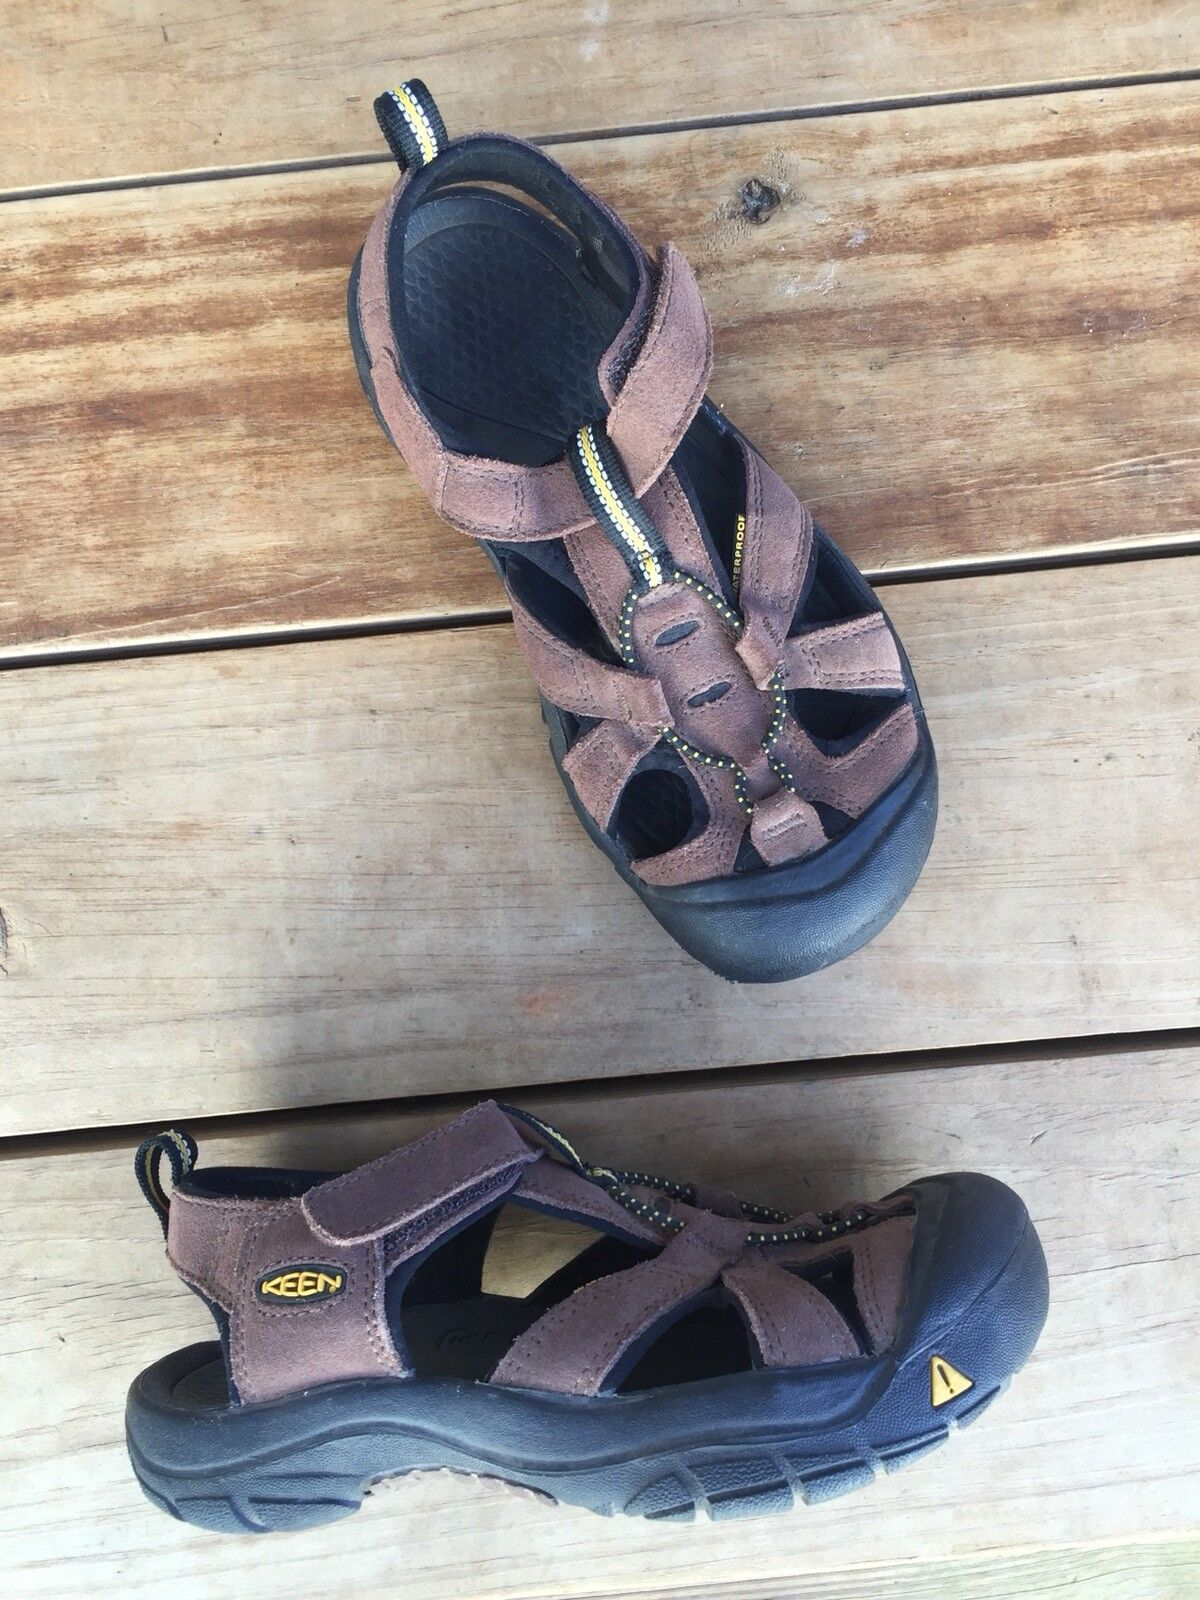 Keen Women's Whisper brown suede leather sandals sport hiking trail bungee Sz 5